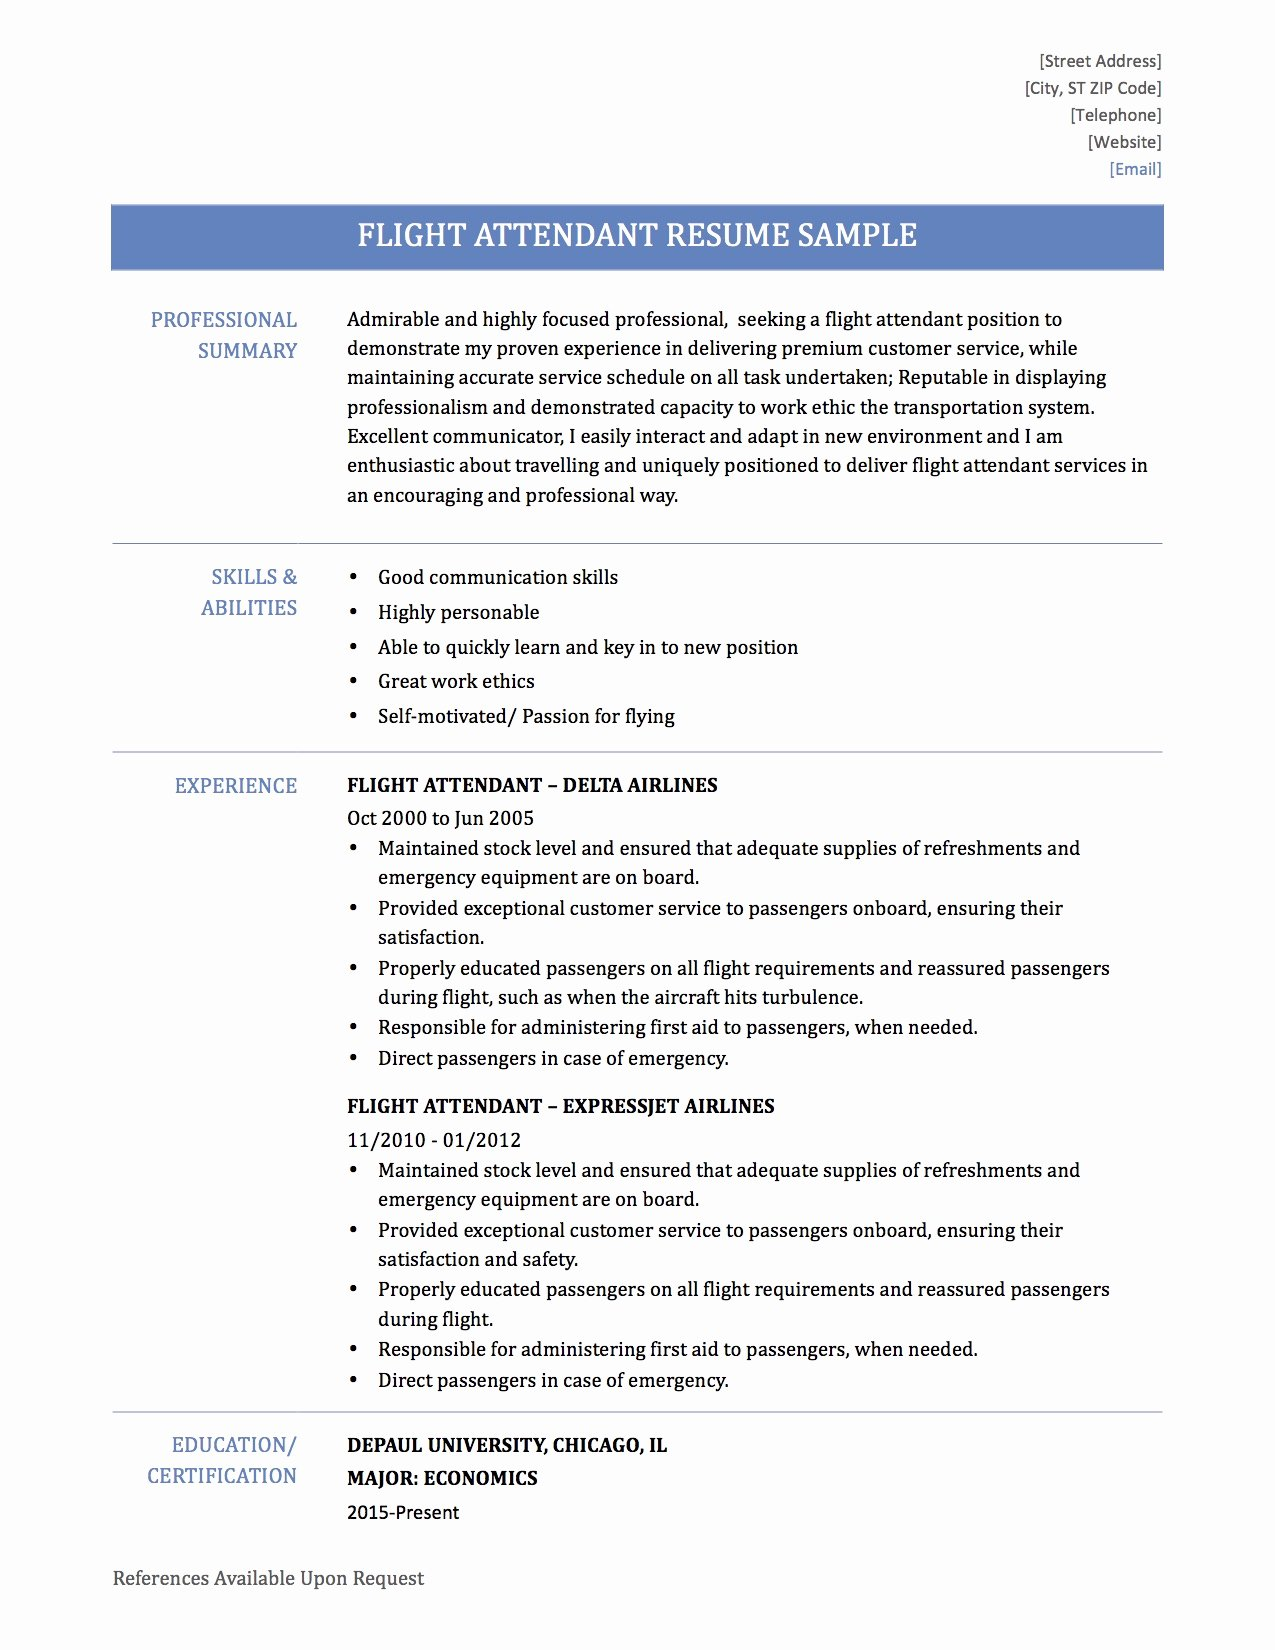 Flight attendant Sample Resume Tips & Templates for Cabin